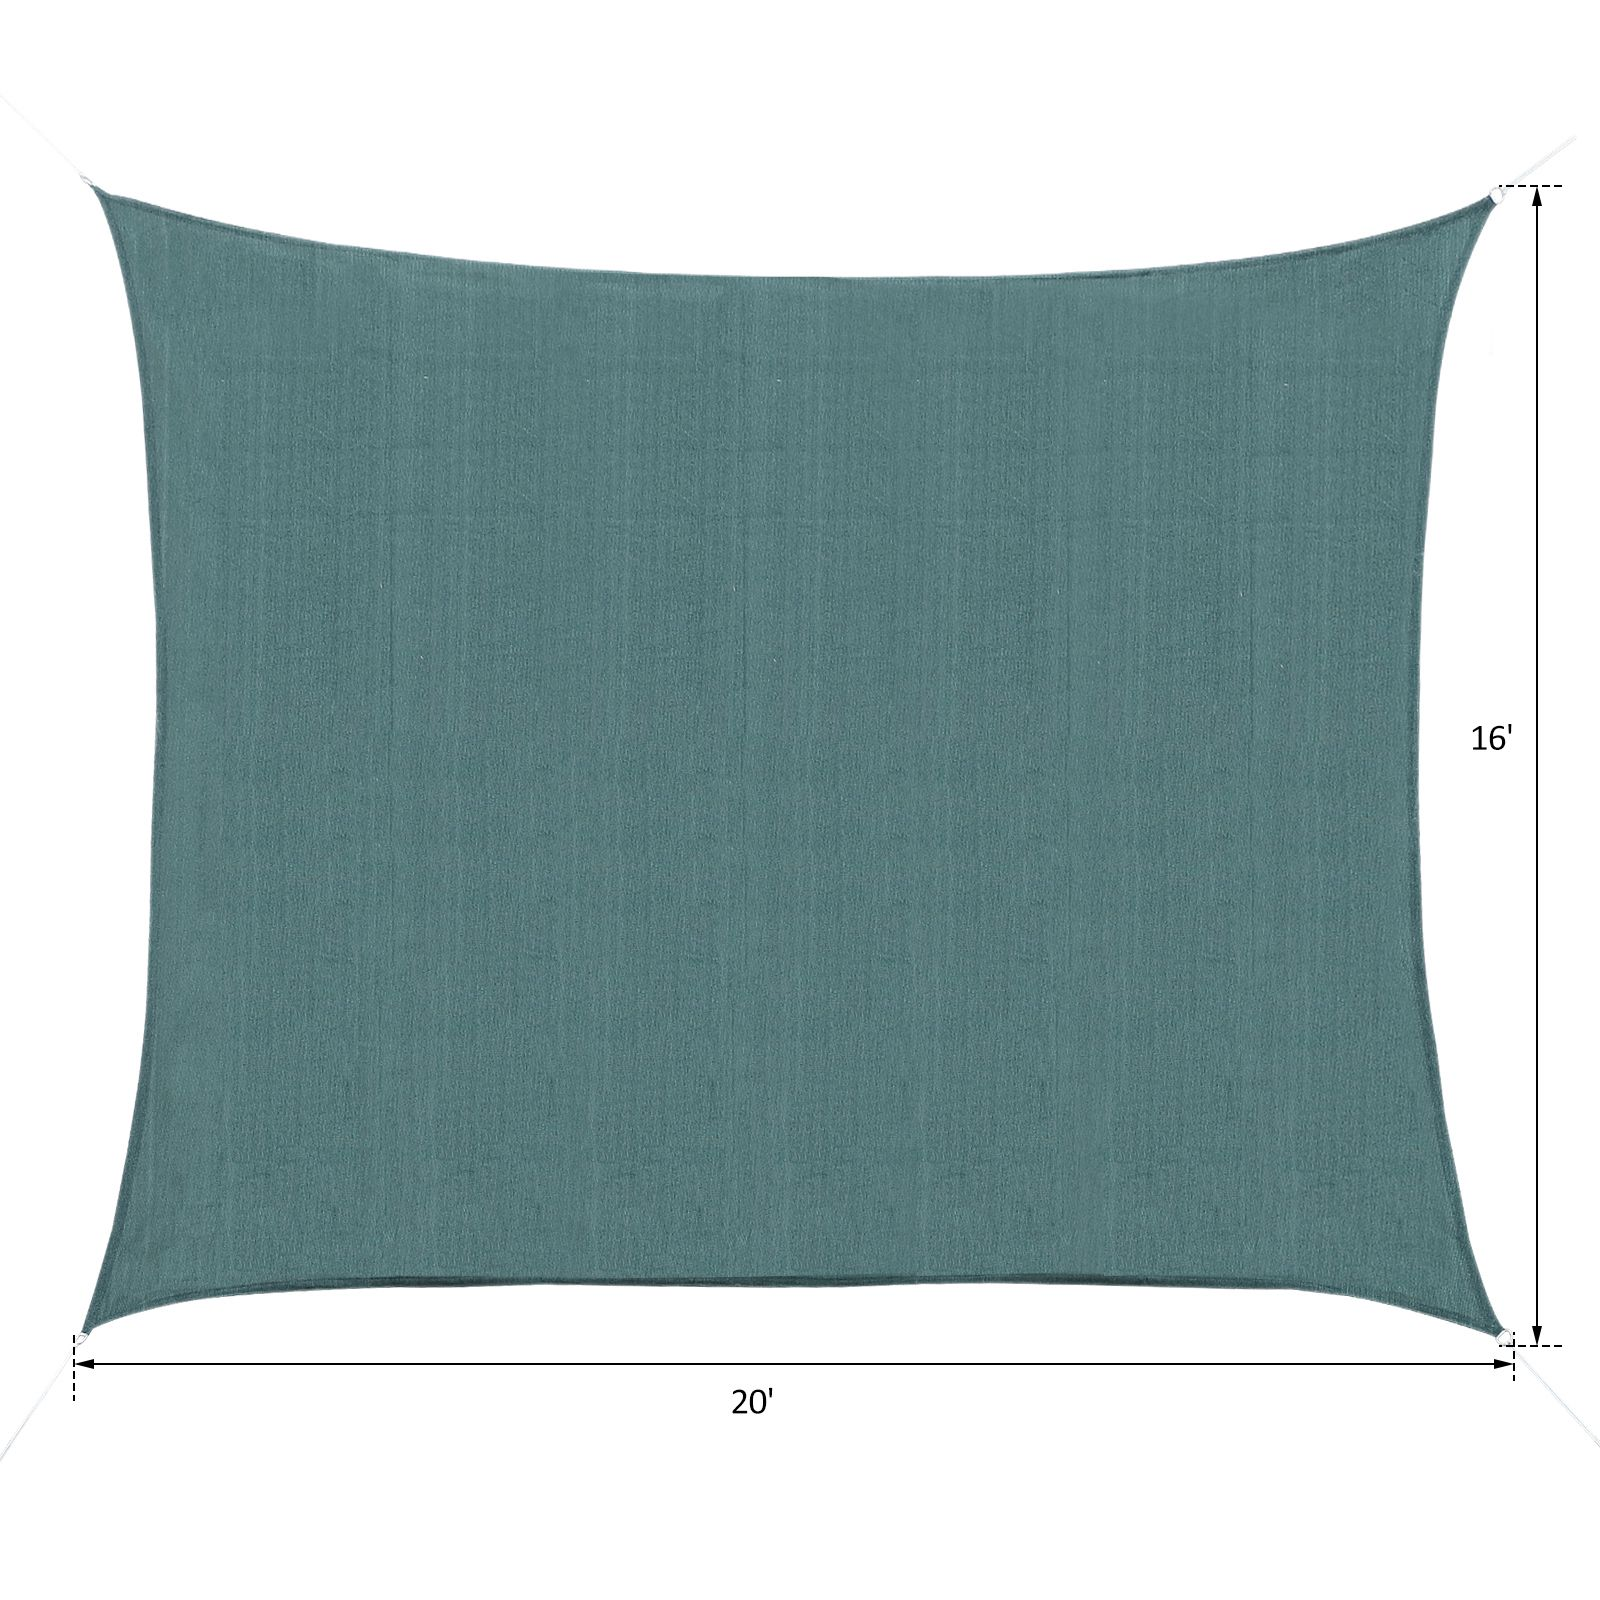 Sun-Shade-Sail-UV-Top-Cover-Outdoor-Canopy-Patio-Triangle-Square-Rectangle-w-Bag thumbnail 26